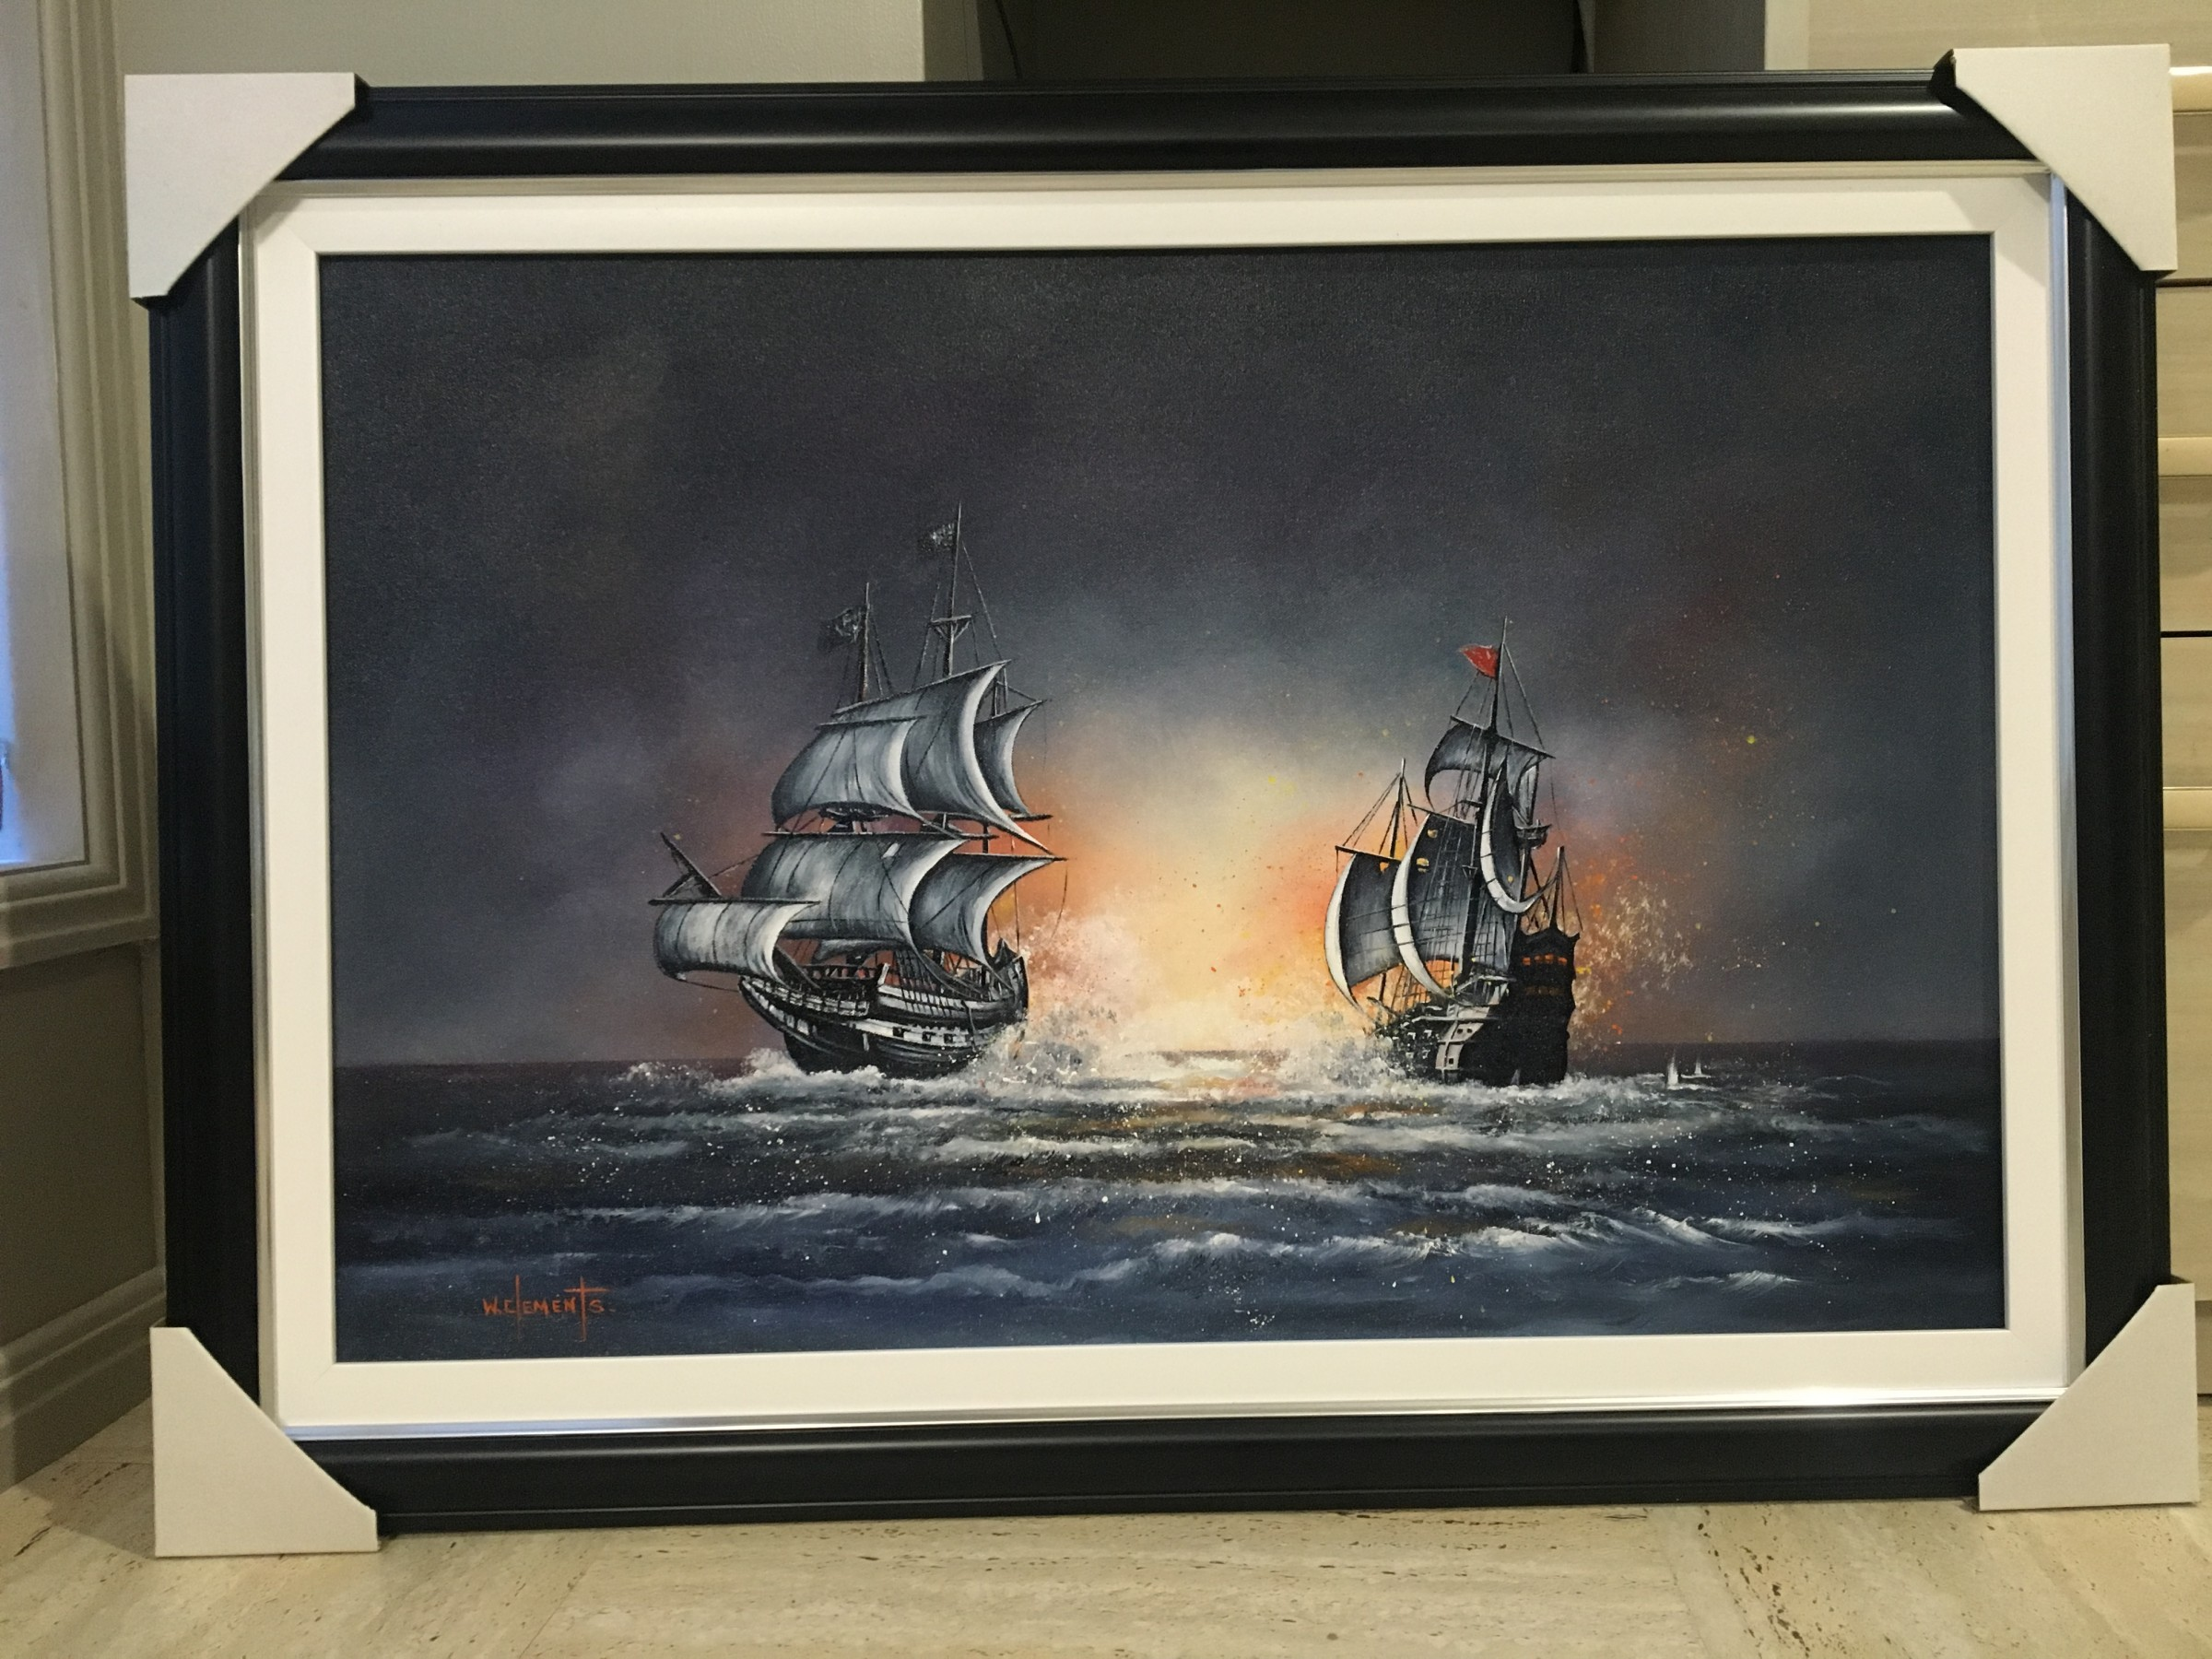 Oil Painting of Old Galleons